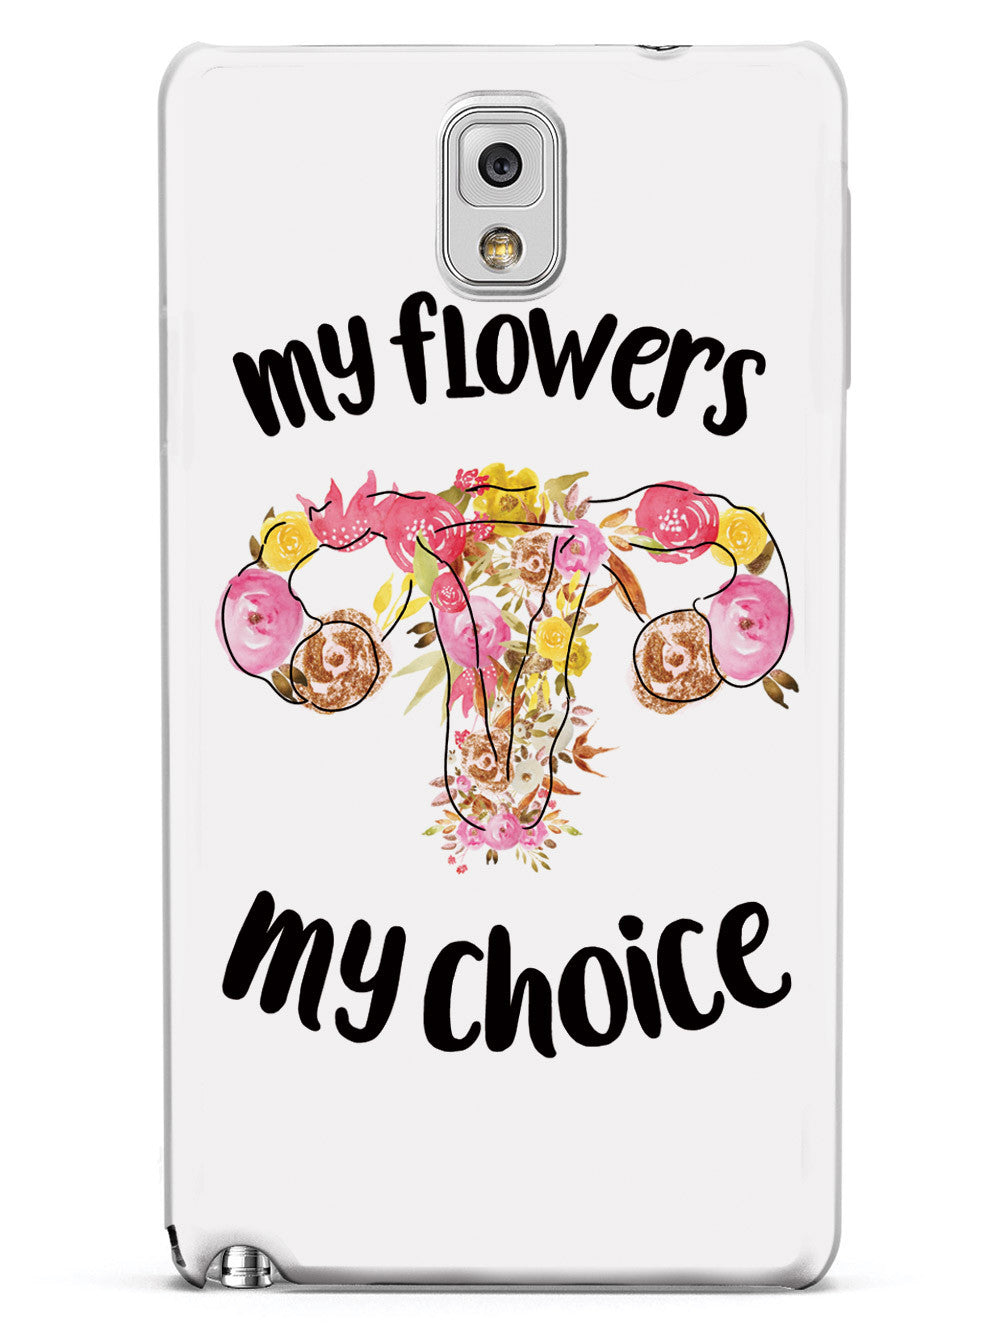 My Flowers My Choice - White Case